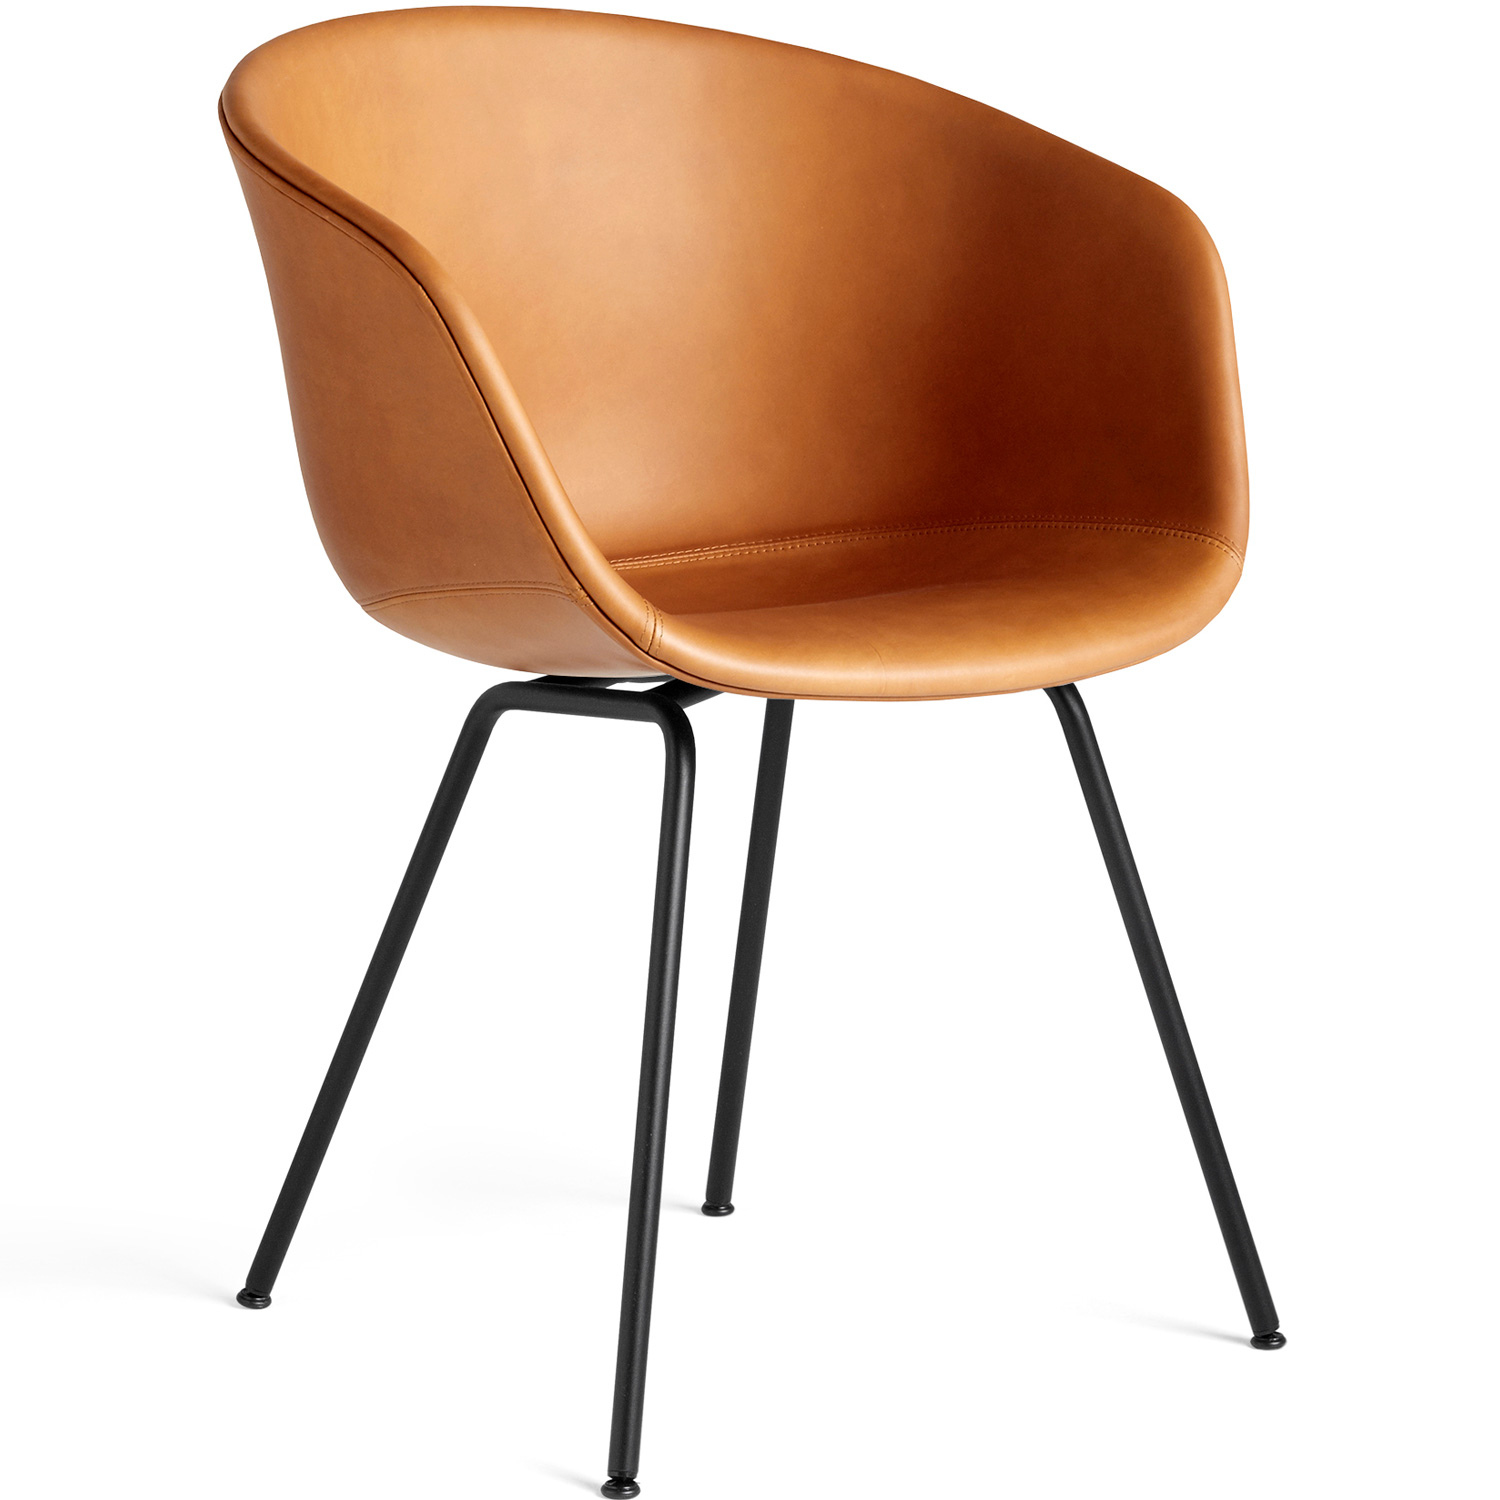 About a Chair 23 Tuoli Lola Hay @ Rum21.fi